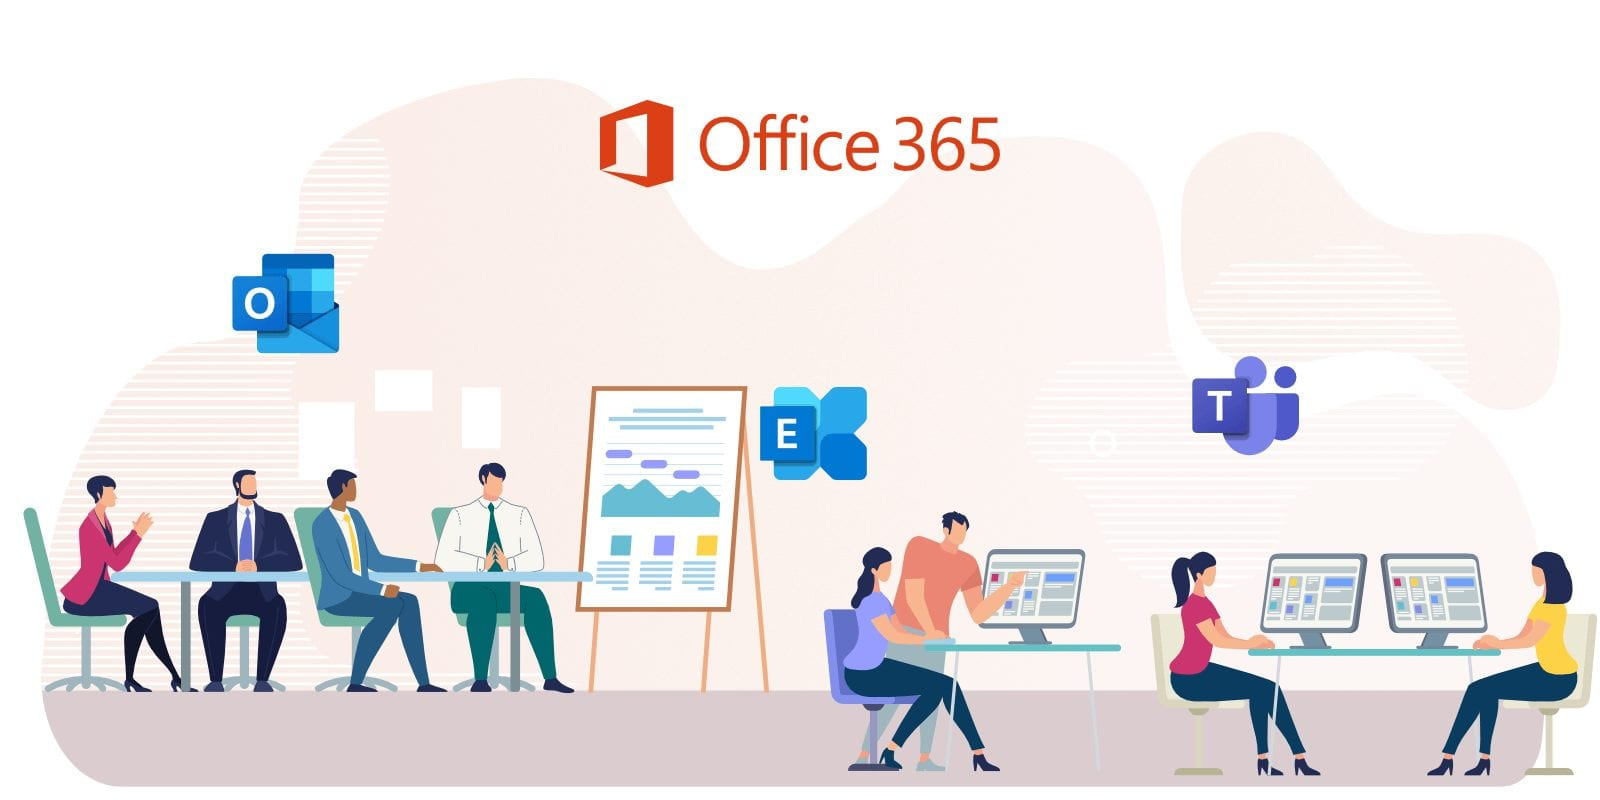 Room and Desk Booking Solution Build on Office 365